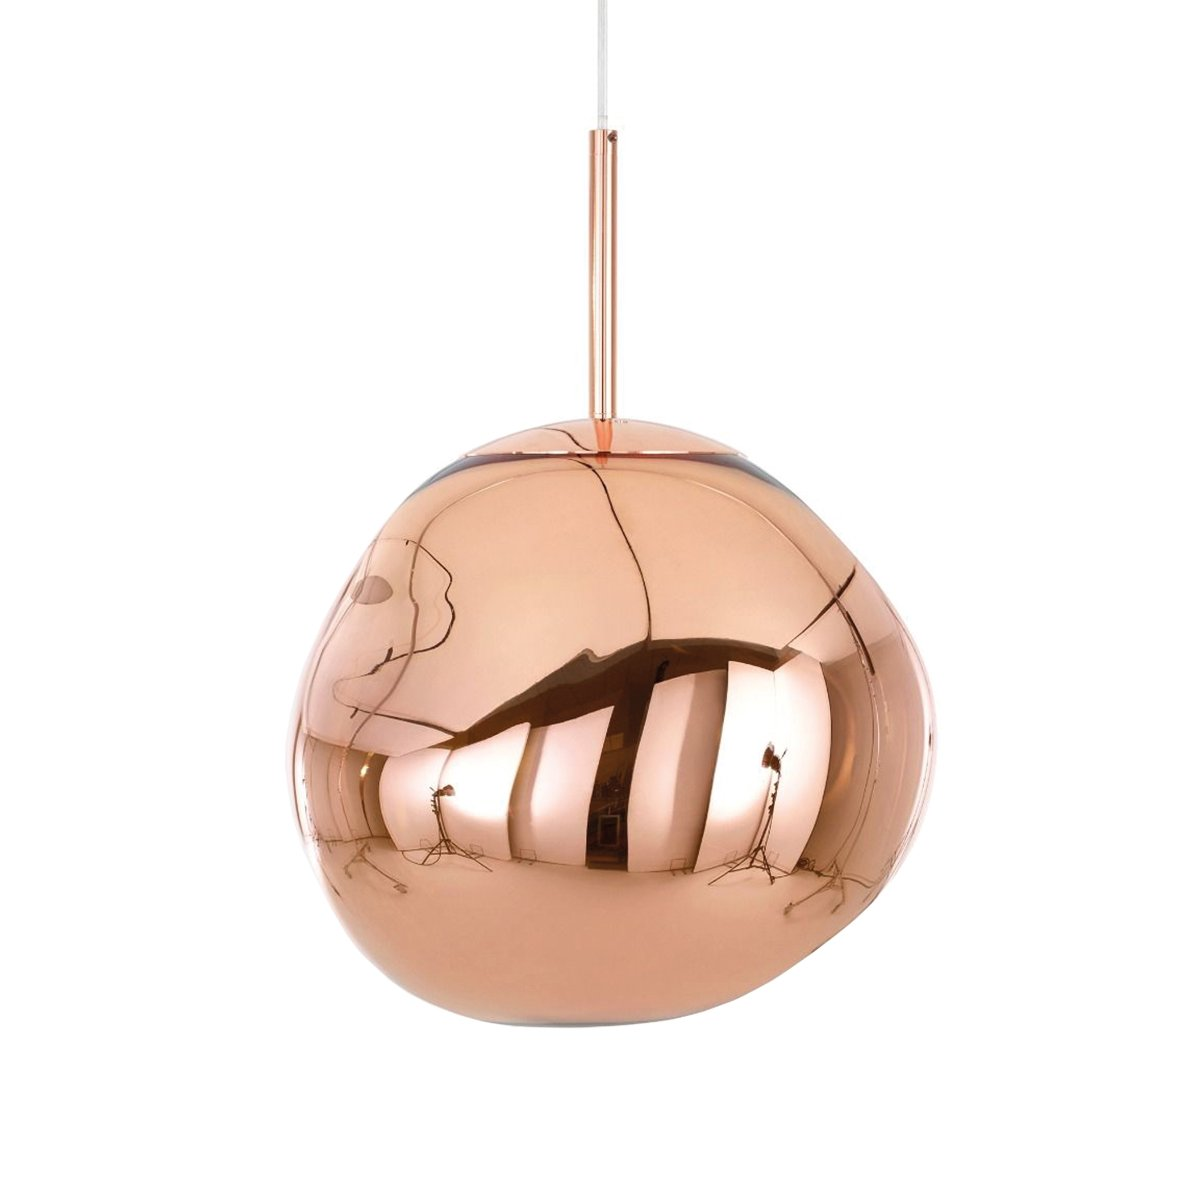 Tom Dixon Melt Mini Hanglamp LED - Koper